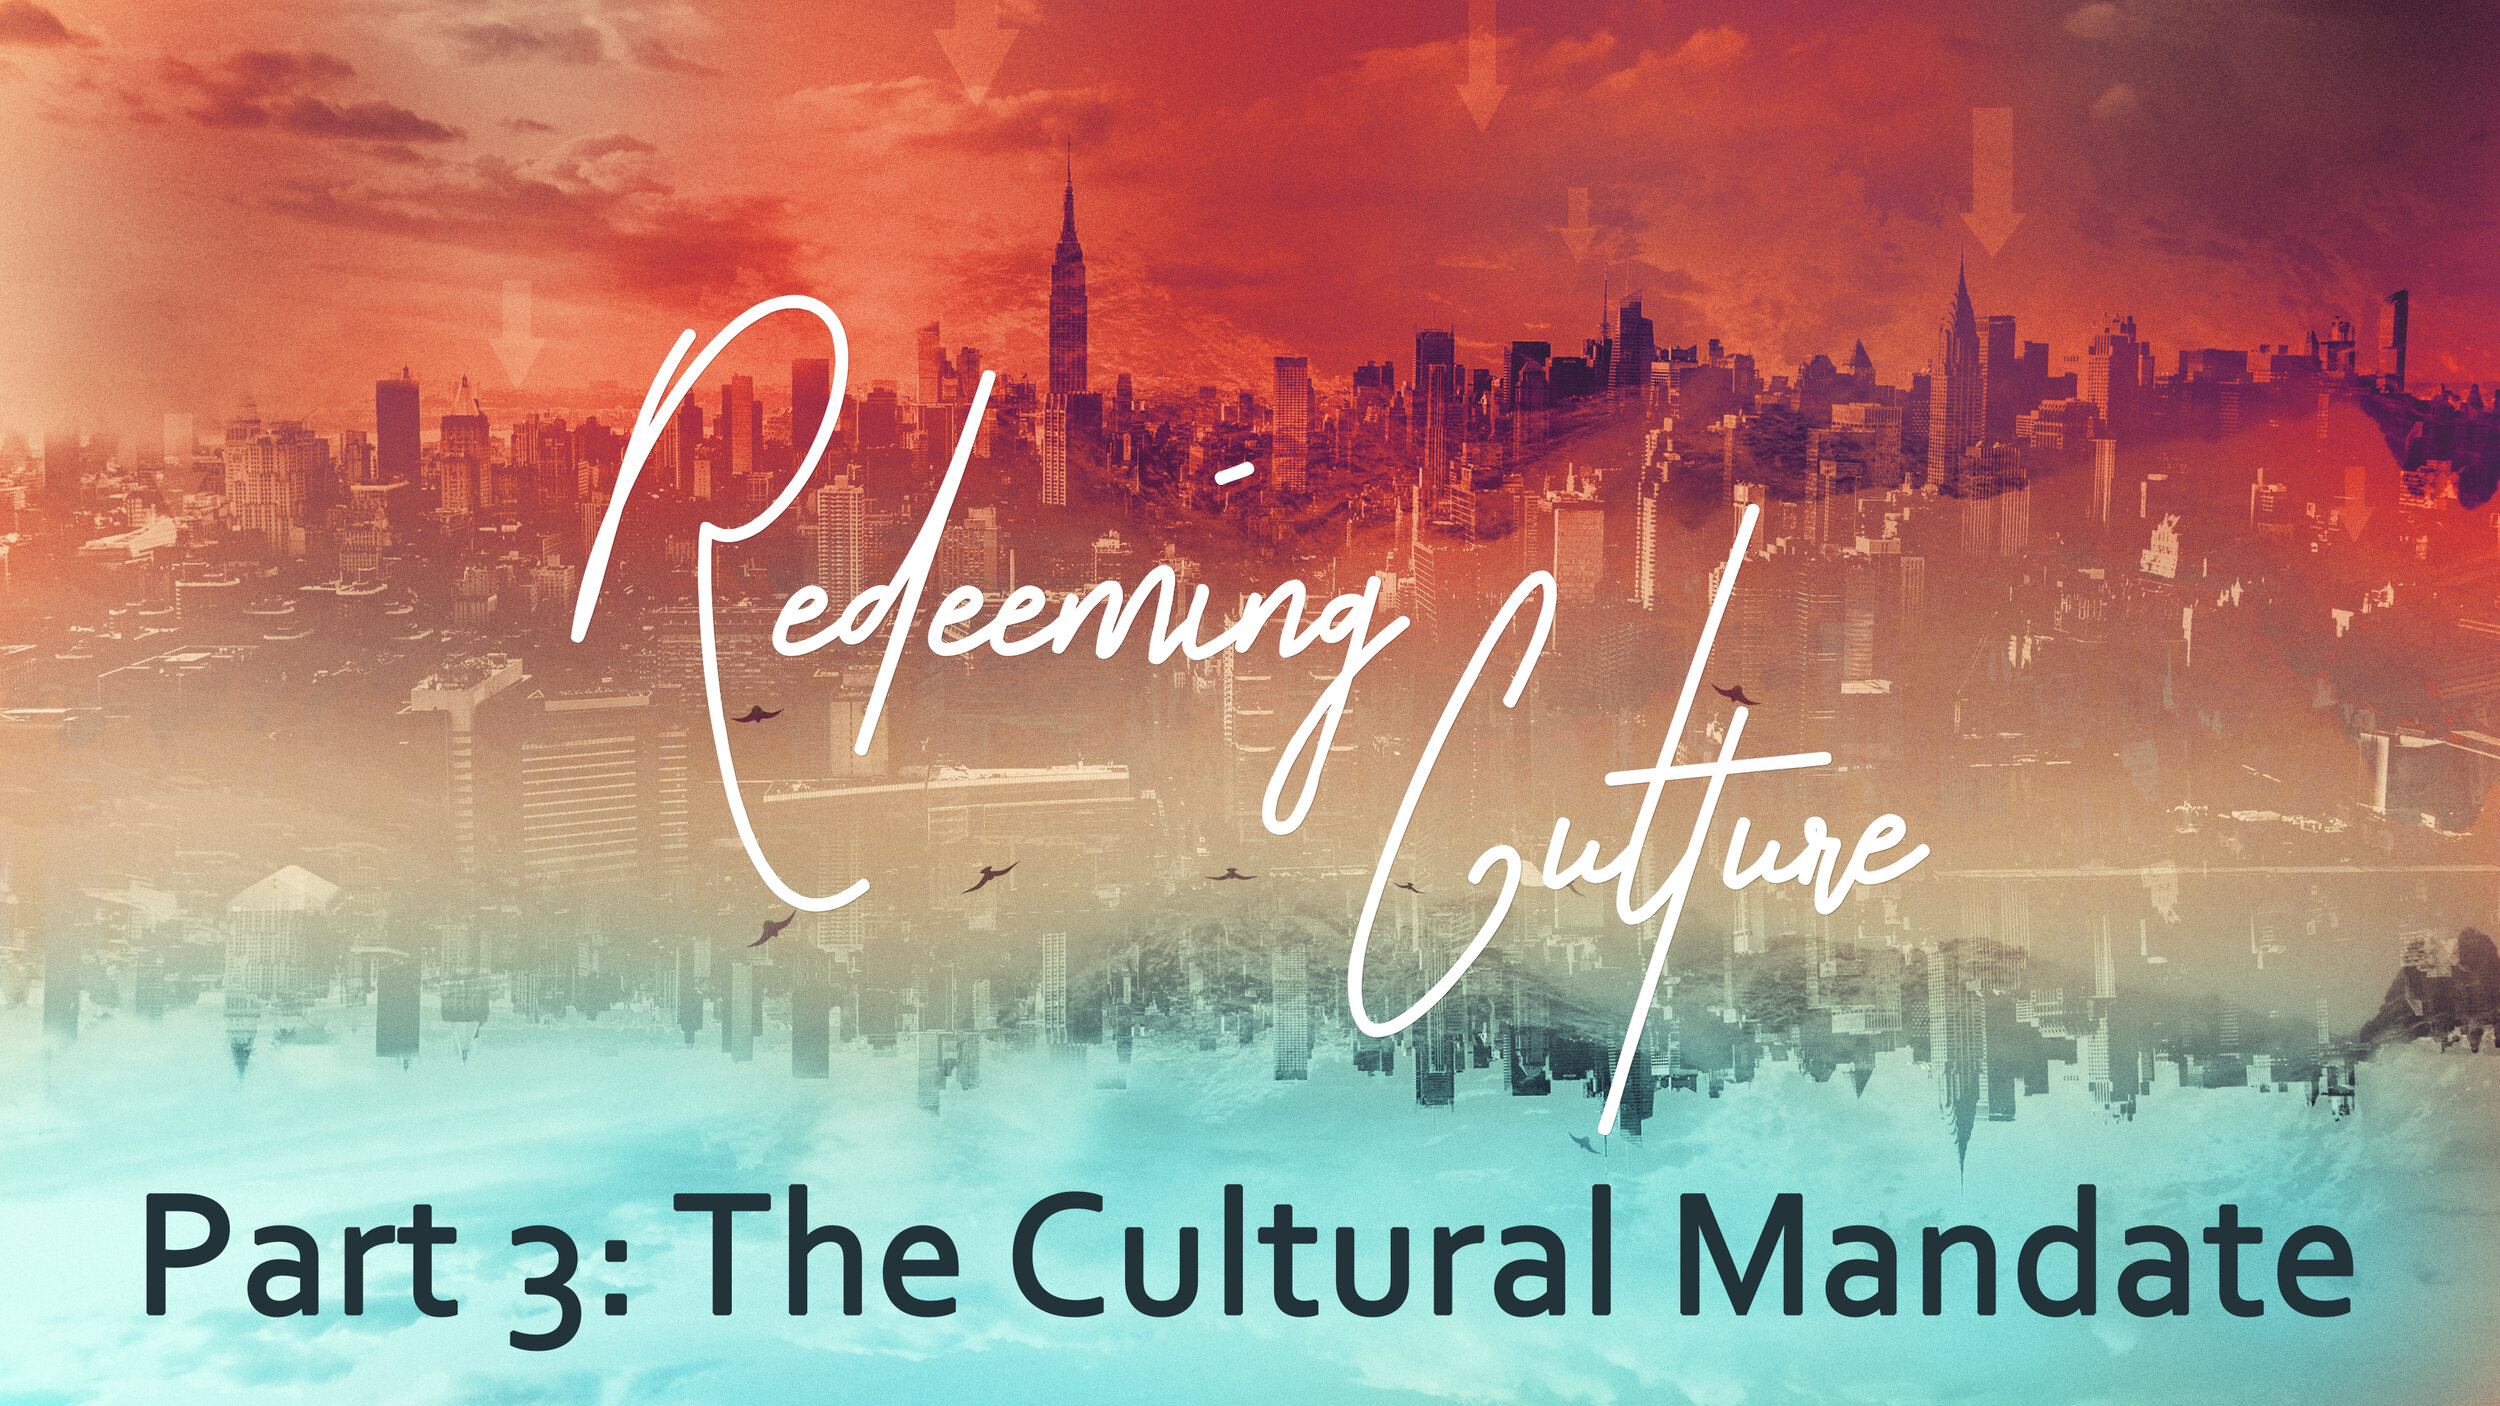 Redeeming Culture Part 3 - The Cultural Mandate.jpg